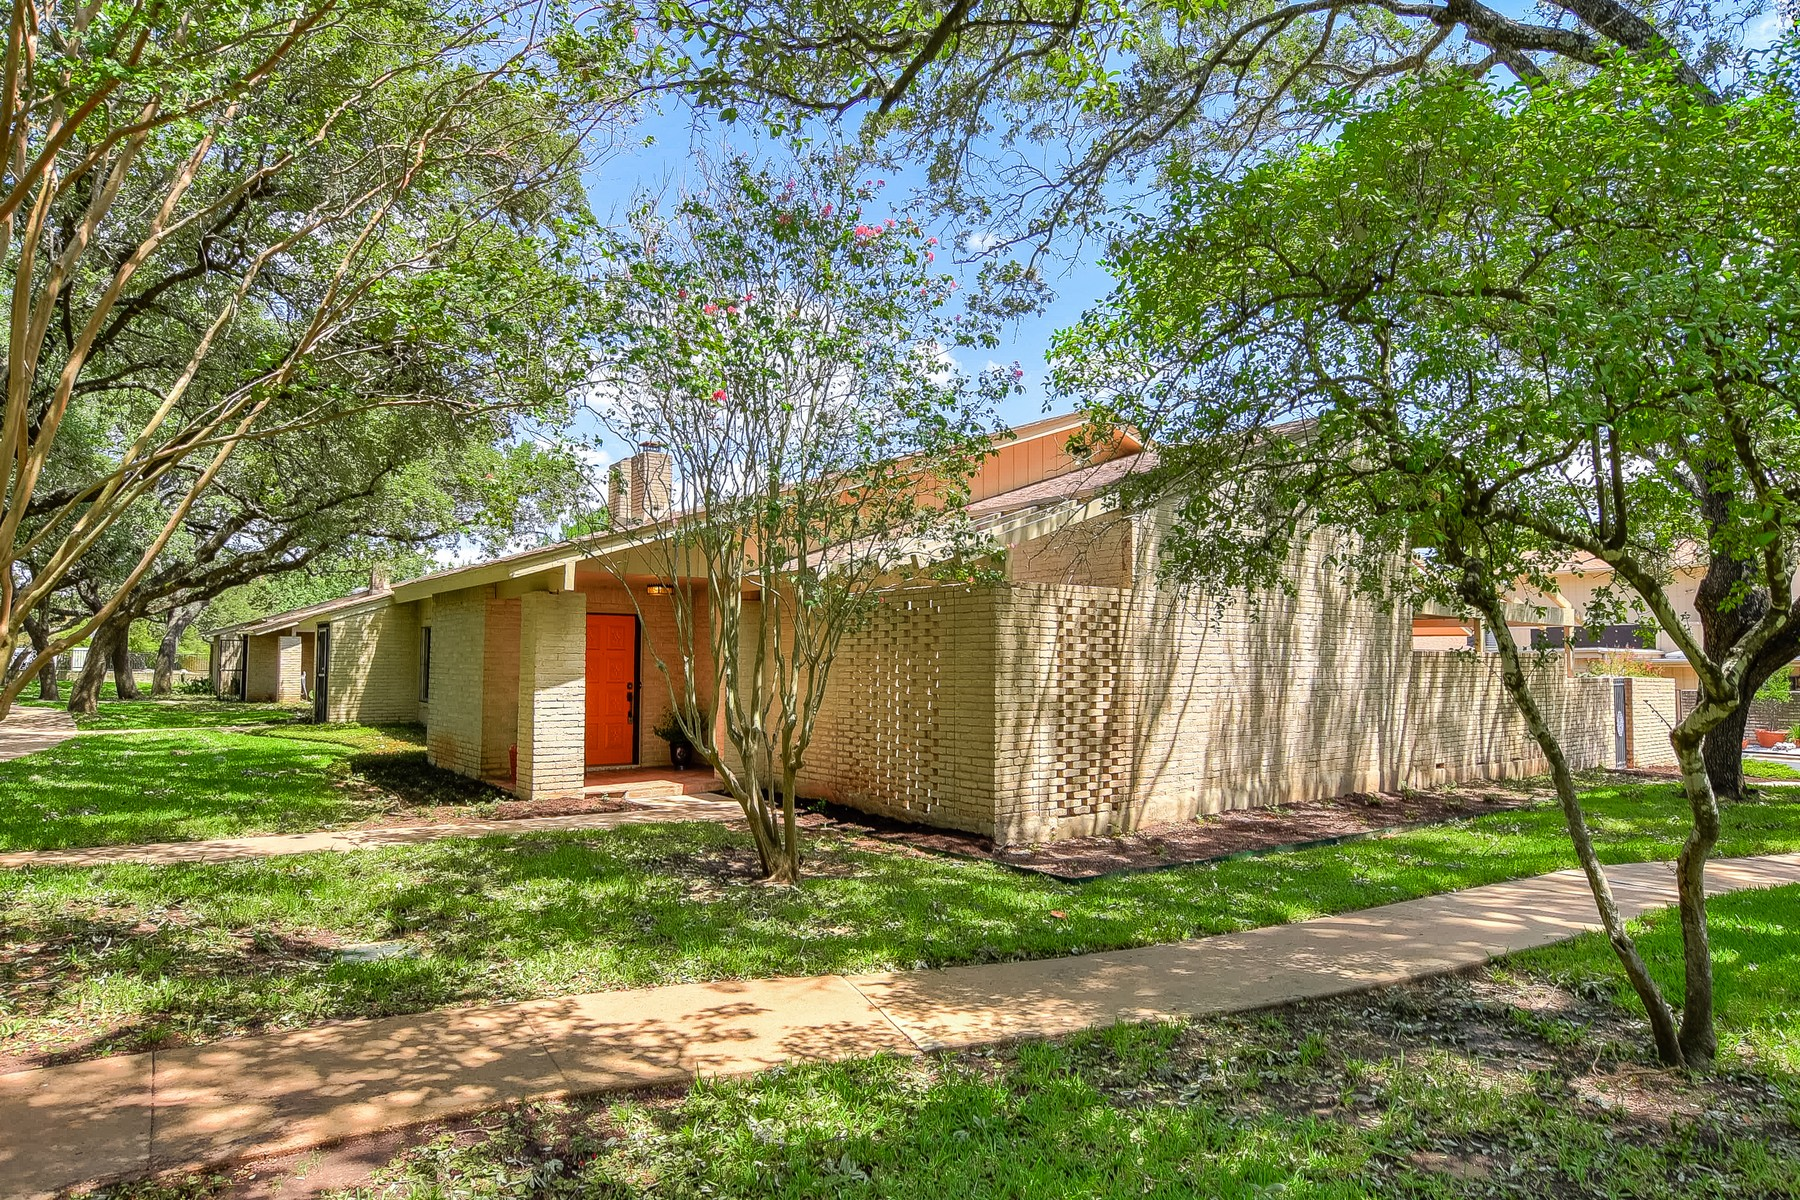 Single Family Home for Sale at Magnificent Townhome in Desirable NW Hills! 8110 Middle Ct Austin, Texas 78759 United States